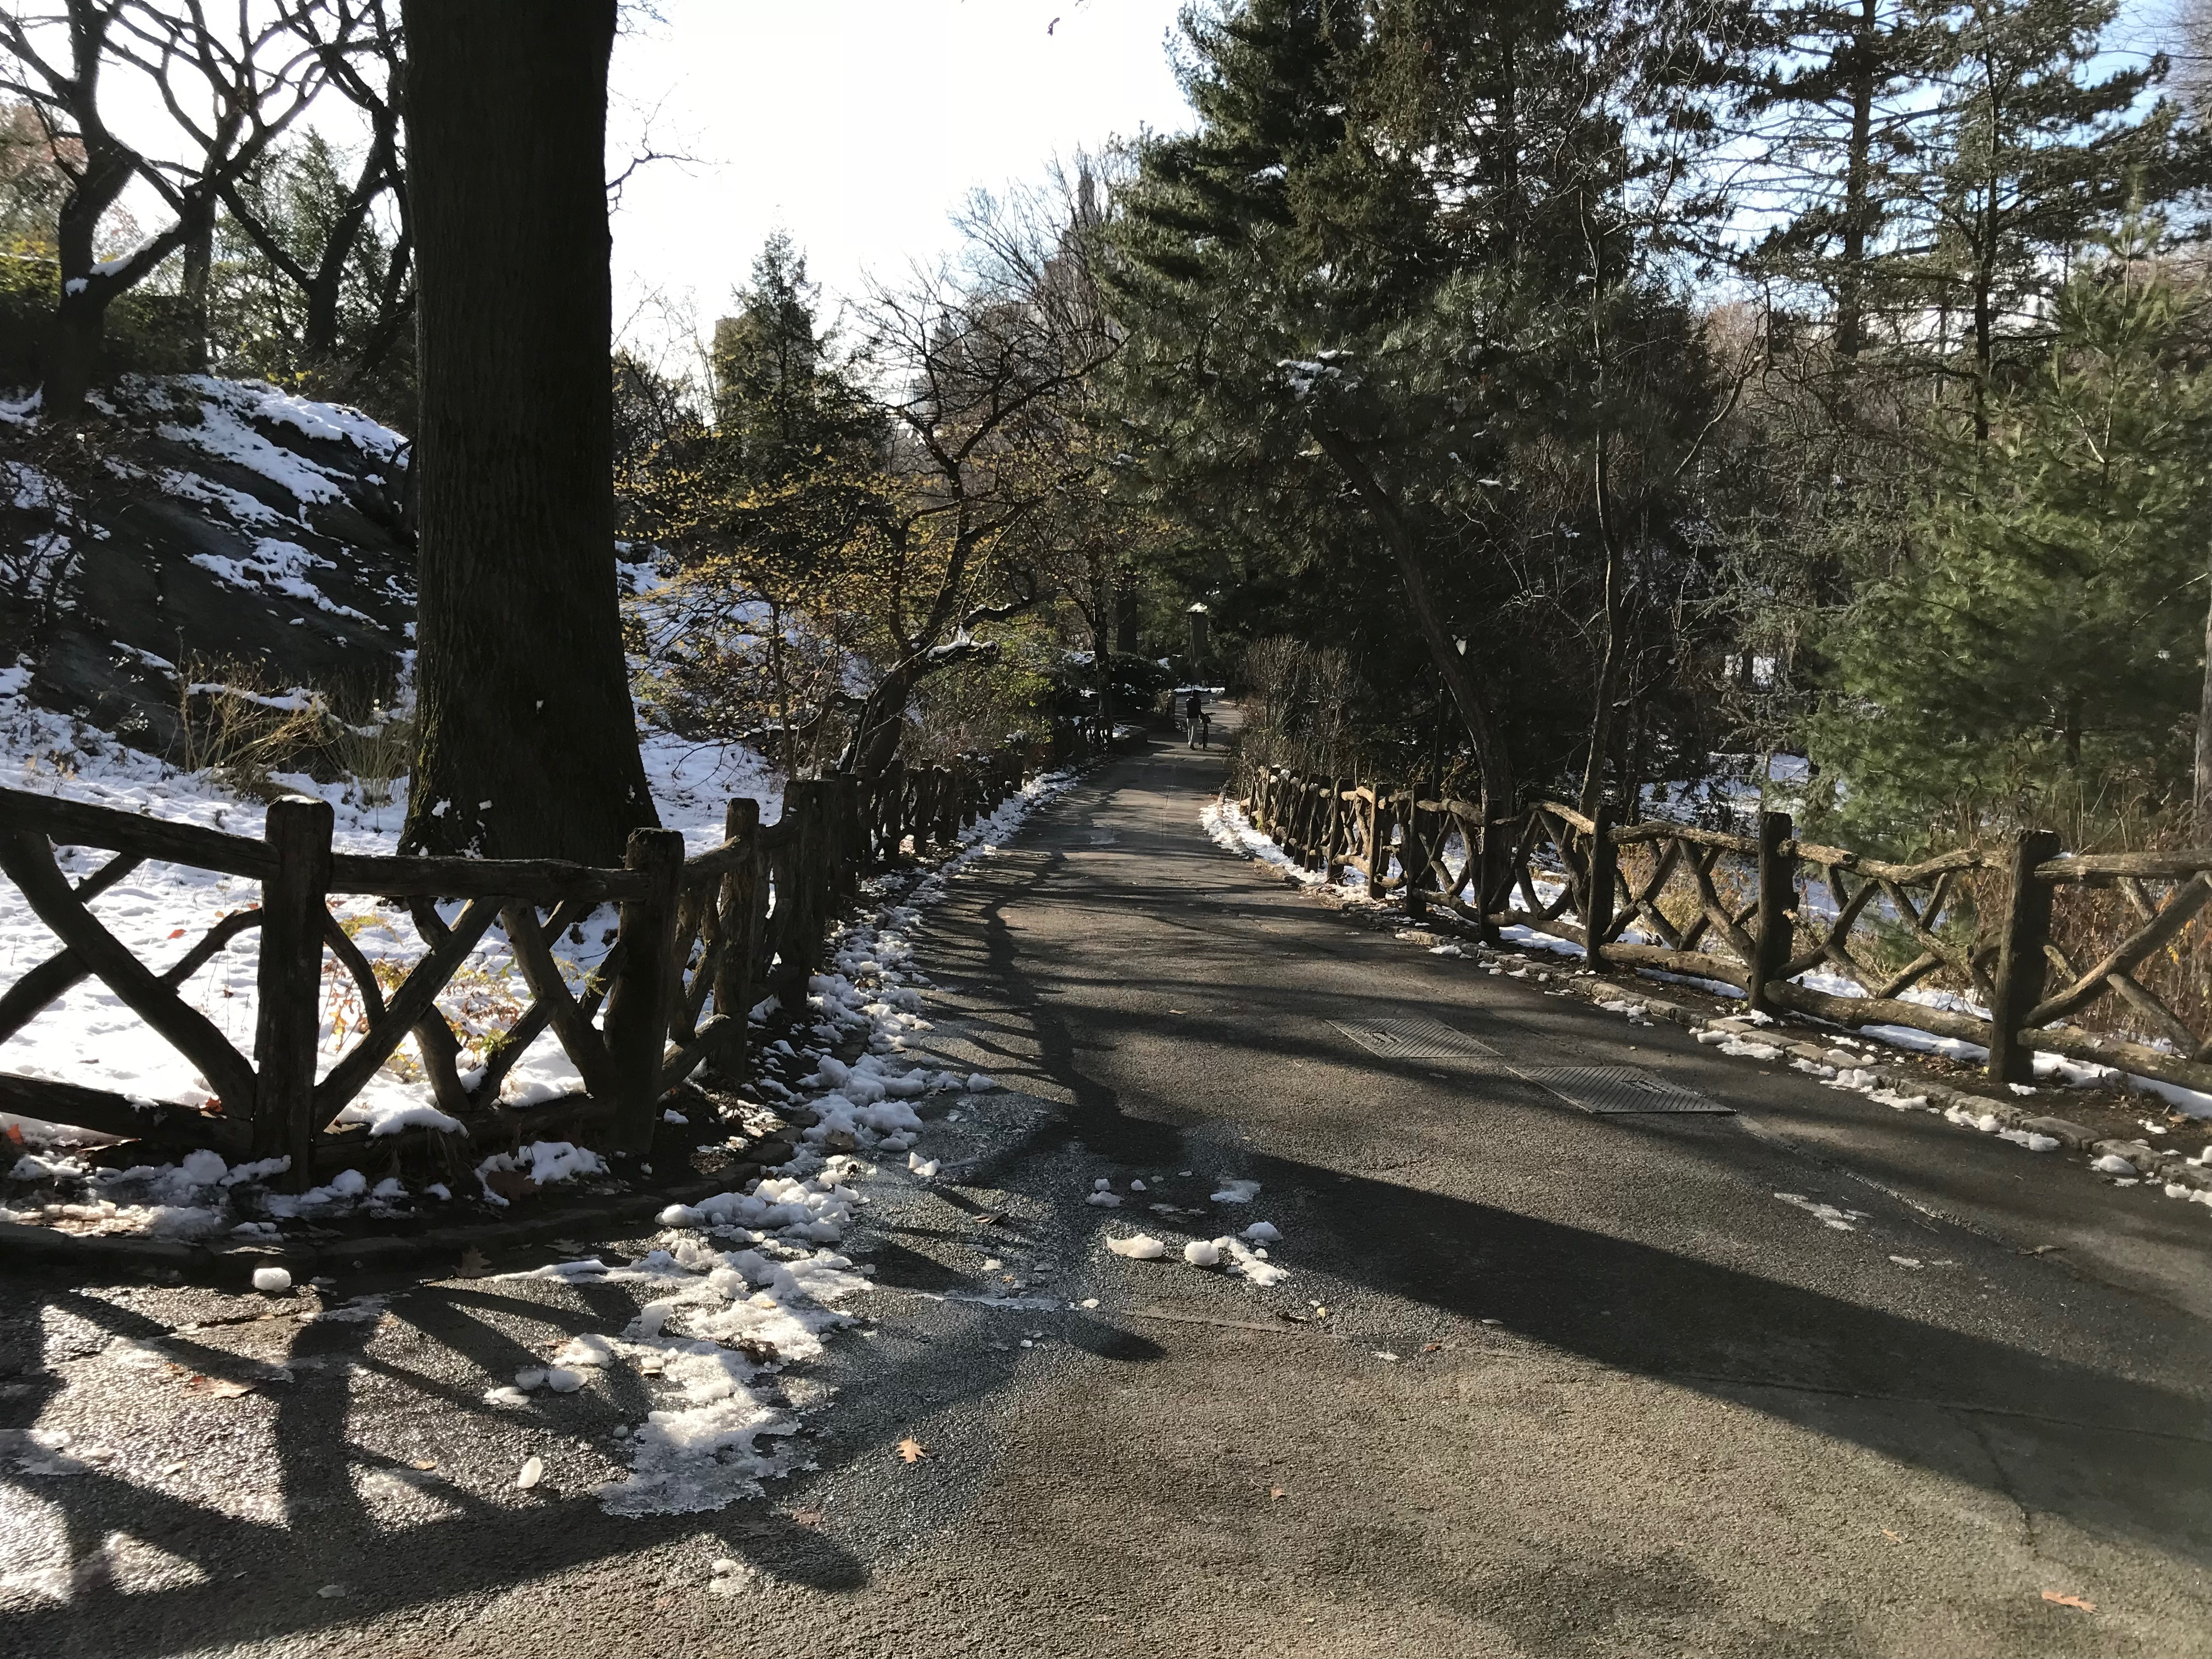 A path in the Shakespeare Garden in Central Park in New York City. (DCNF/Ethan Barton)